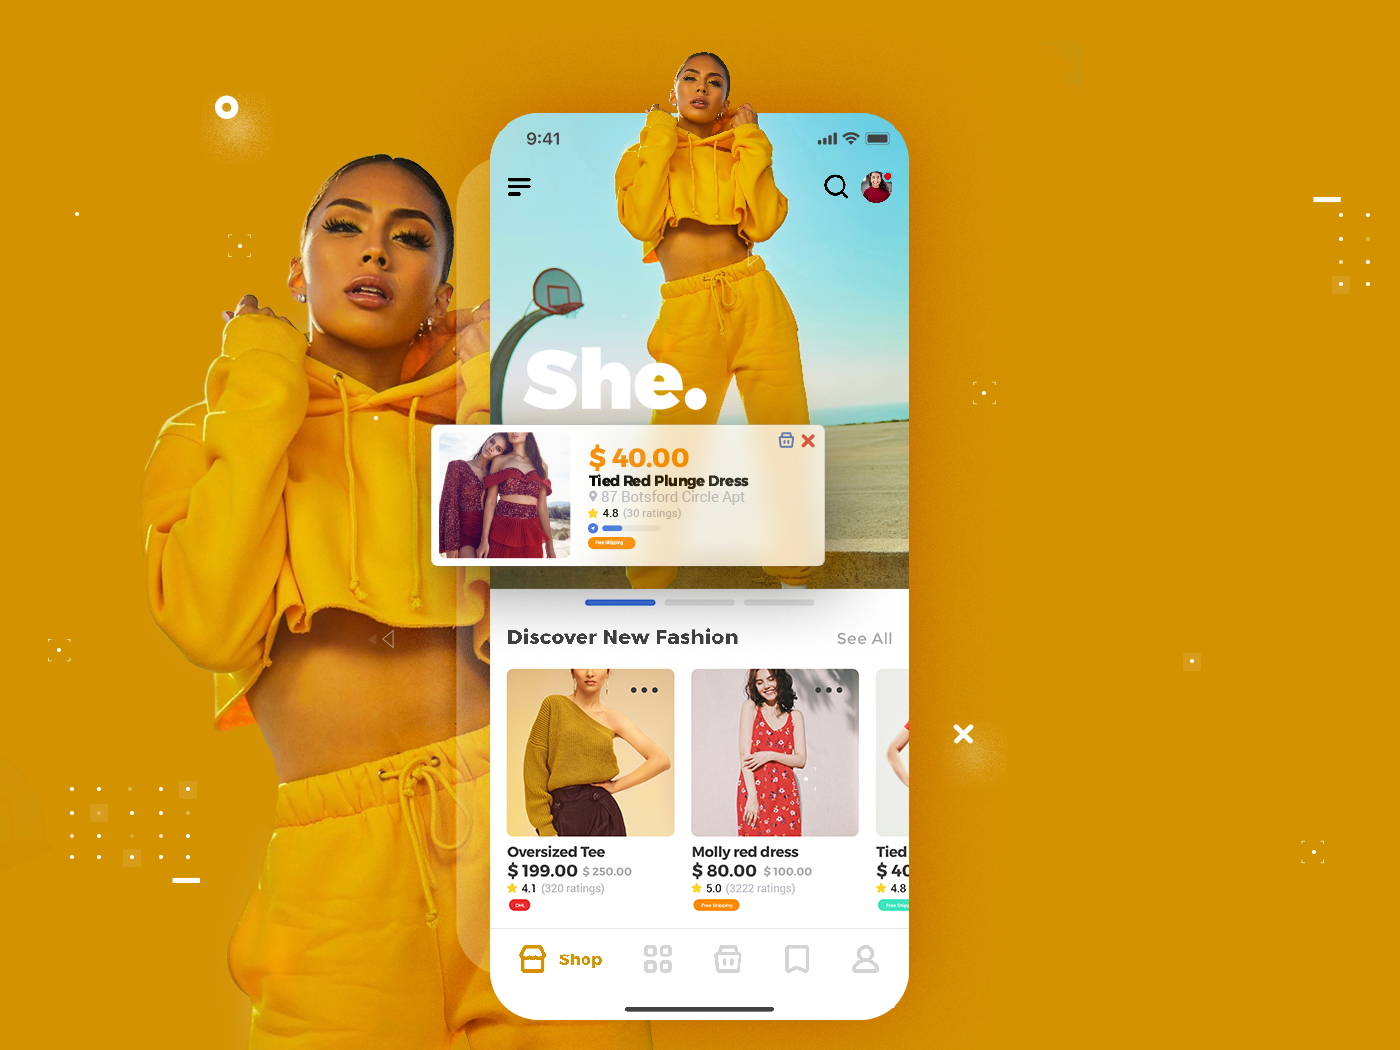 E commerce Ui App - She uidesign ecommerce ui ecommerce business ecommerce shop ecommerce app ecommerce design ui designer uiux ui designs ui kit ui ressources ui design app branding ux ui minimal design illustration